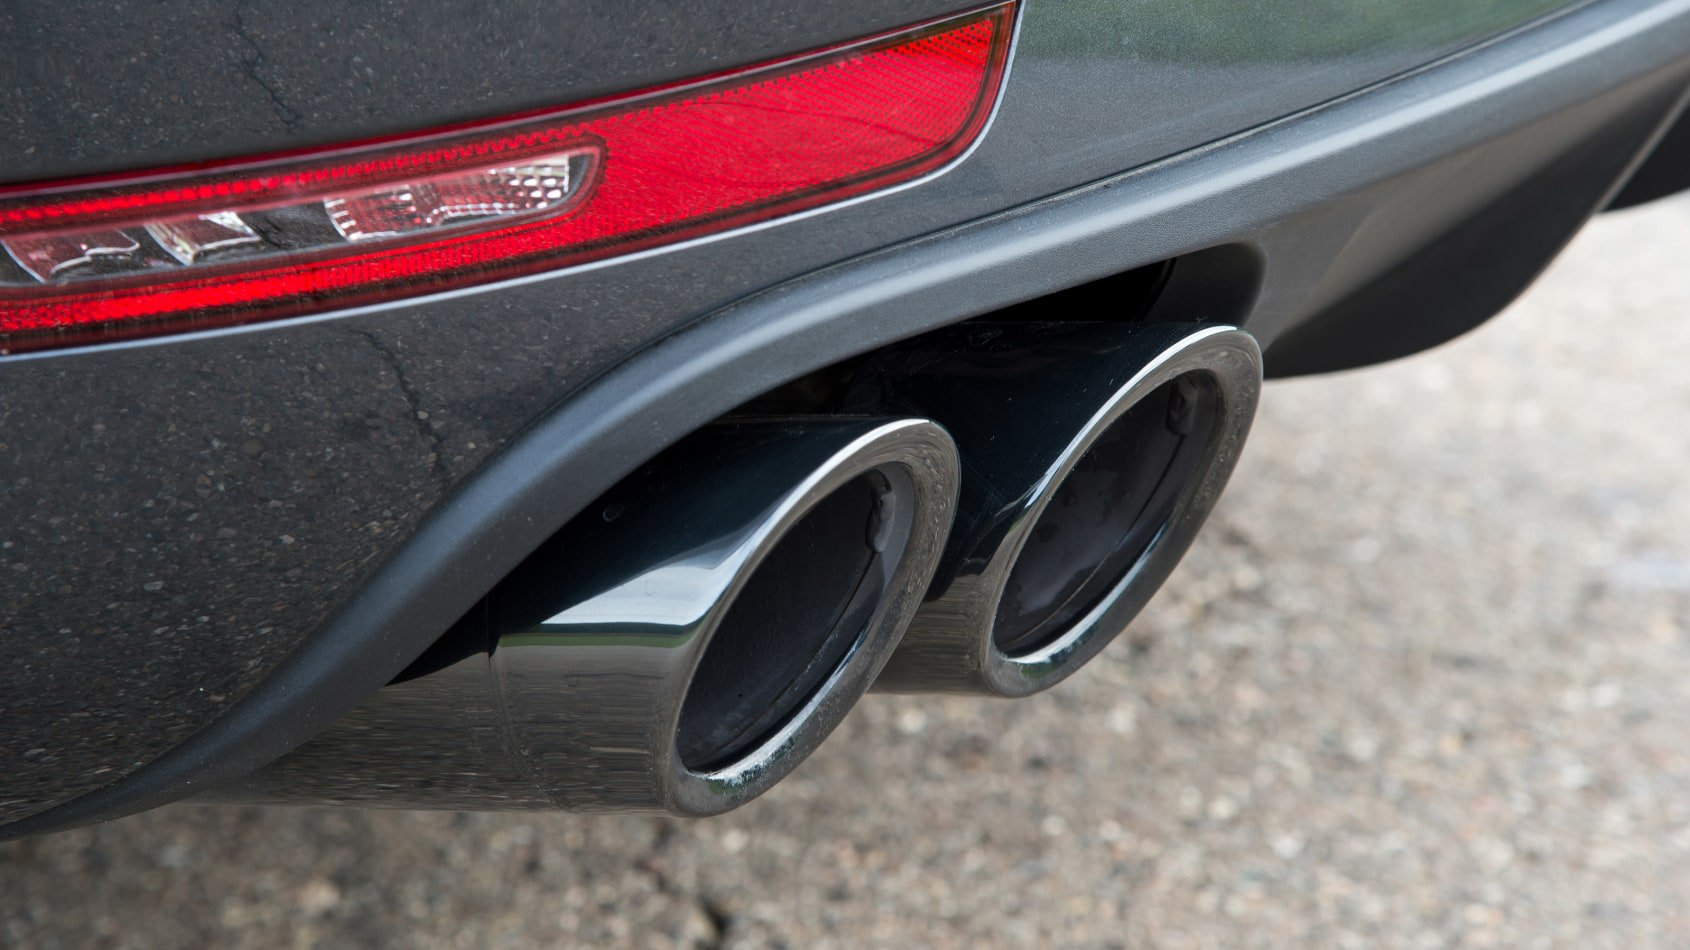 2020 Porshce Macan Turbo exhausts